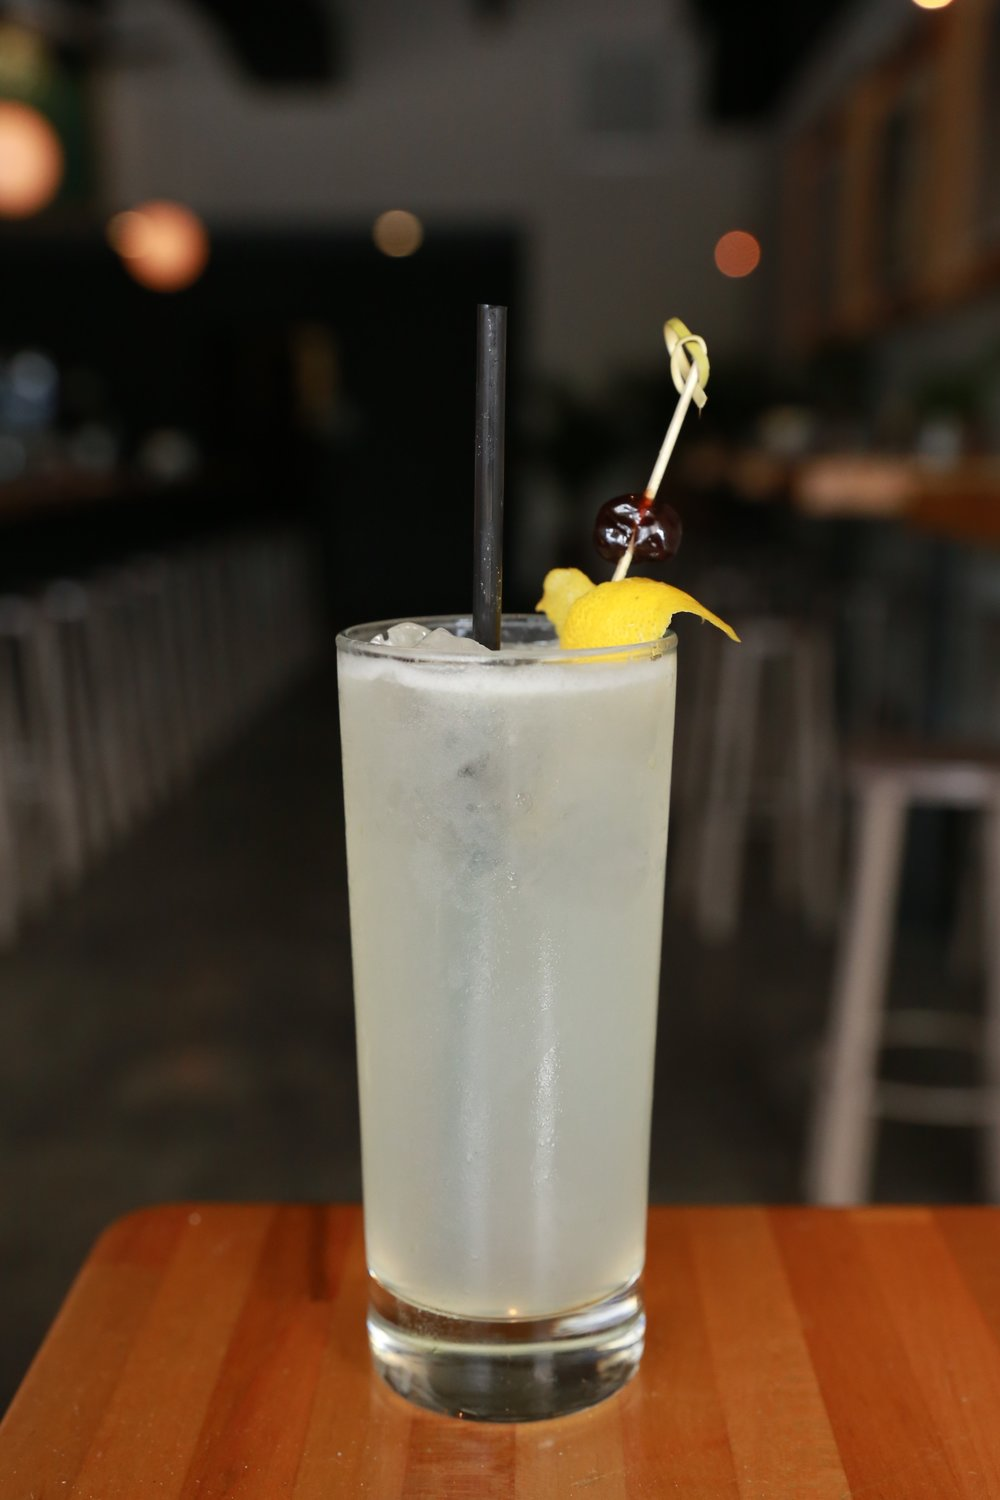 Tom Collins - Hayman's Old Tom Gin, Lemon, Sugar, Soda Water, Cherry. Light and just a little tart.